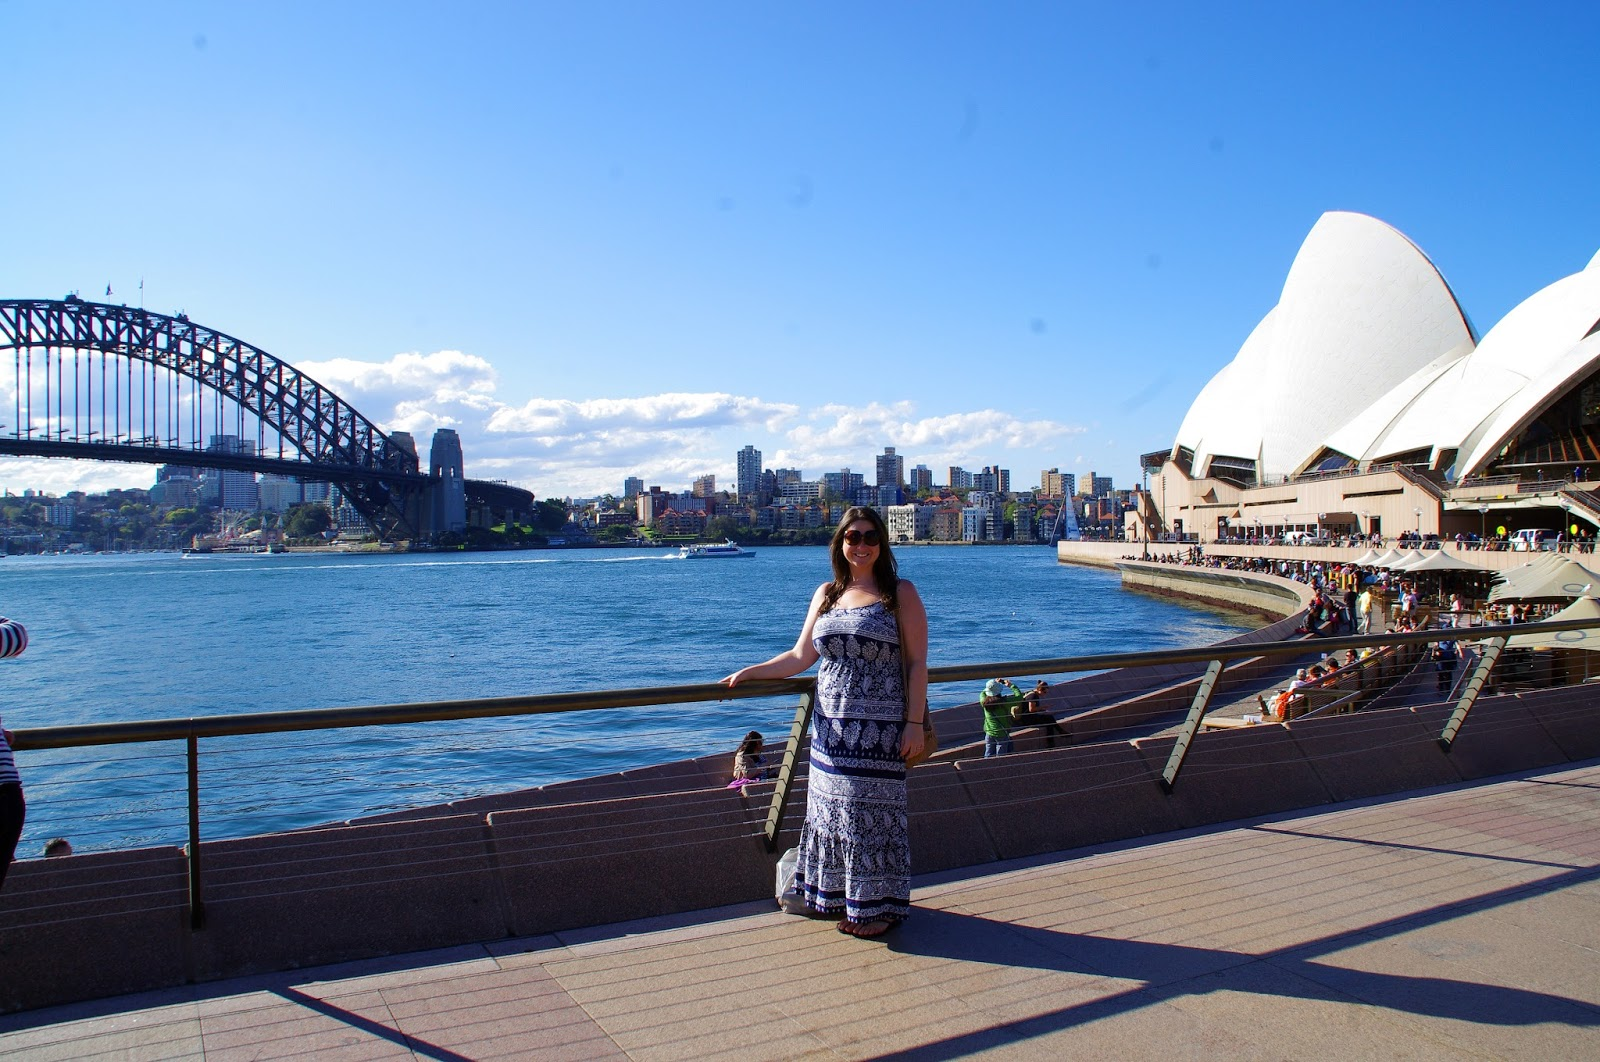 simone at the opera house